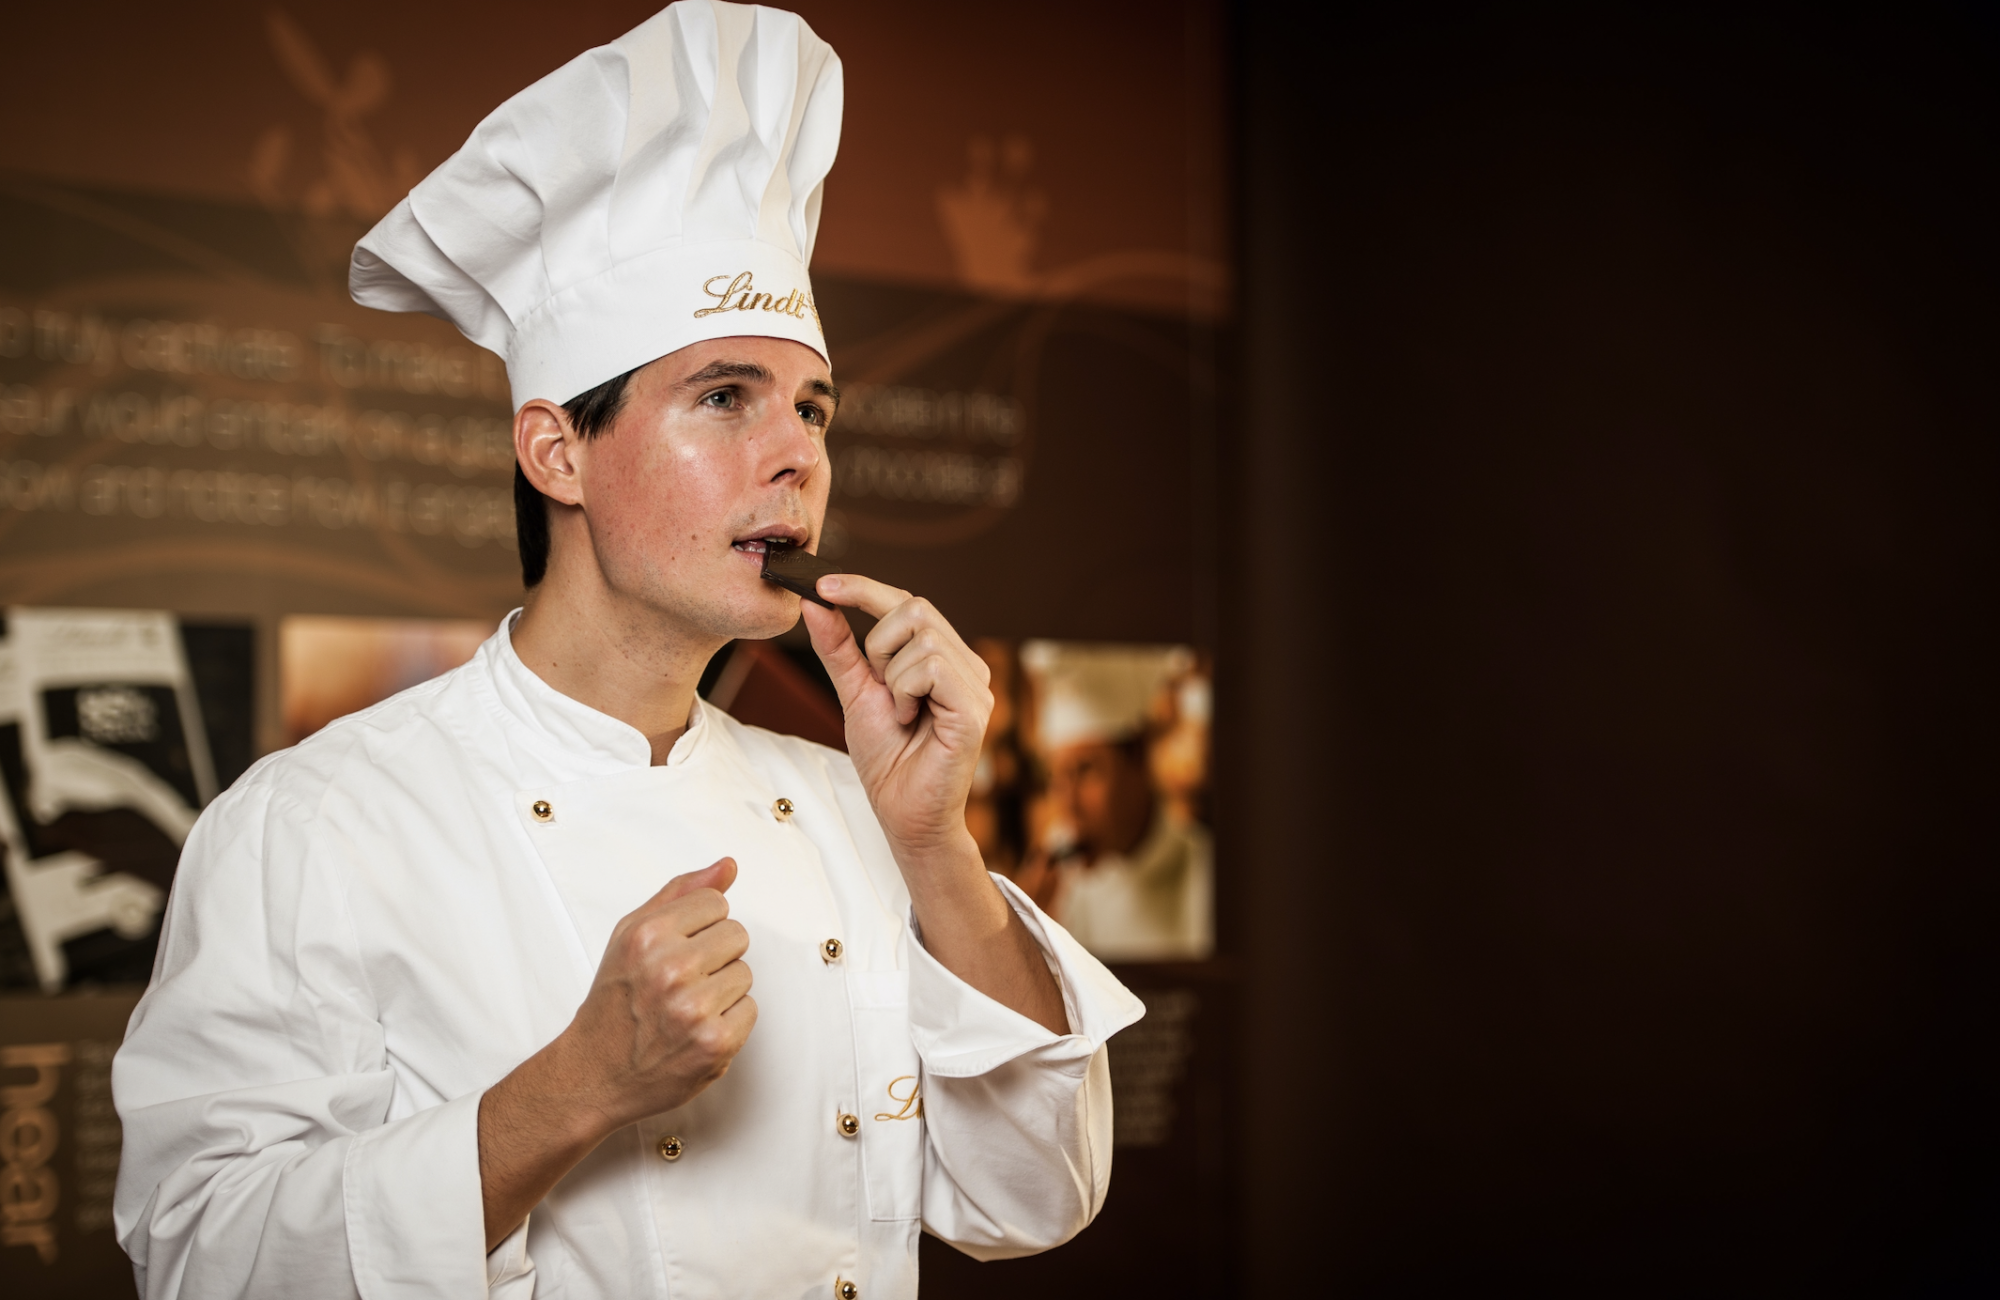 LINDT Master Chocolatier Stefan Bruderer - a self confessed chocolate obsessive since he was six years old!